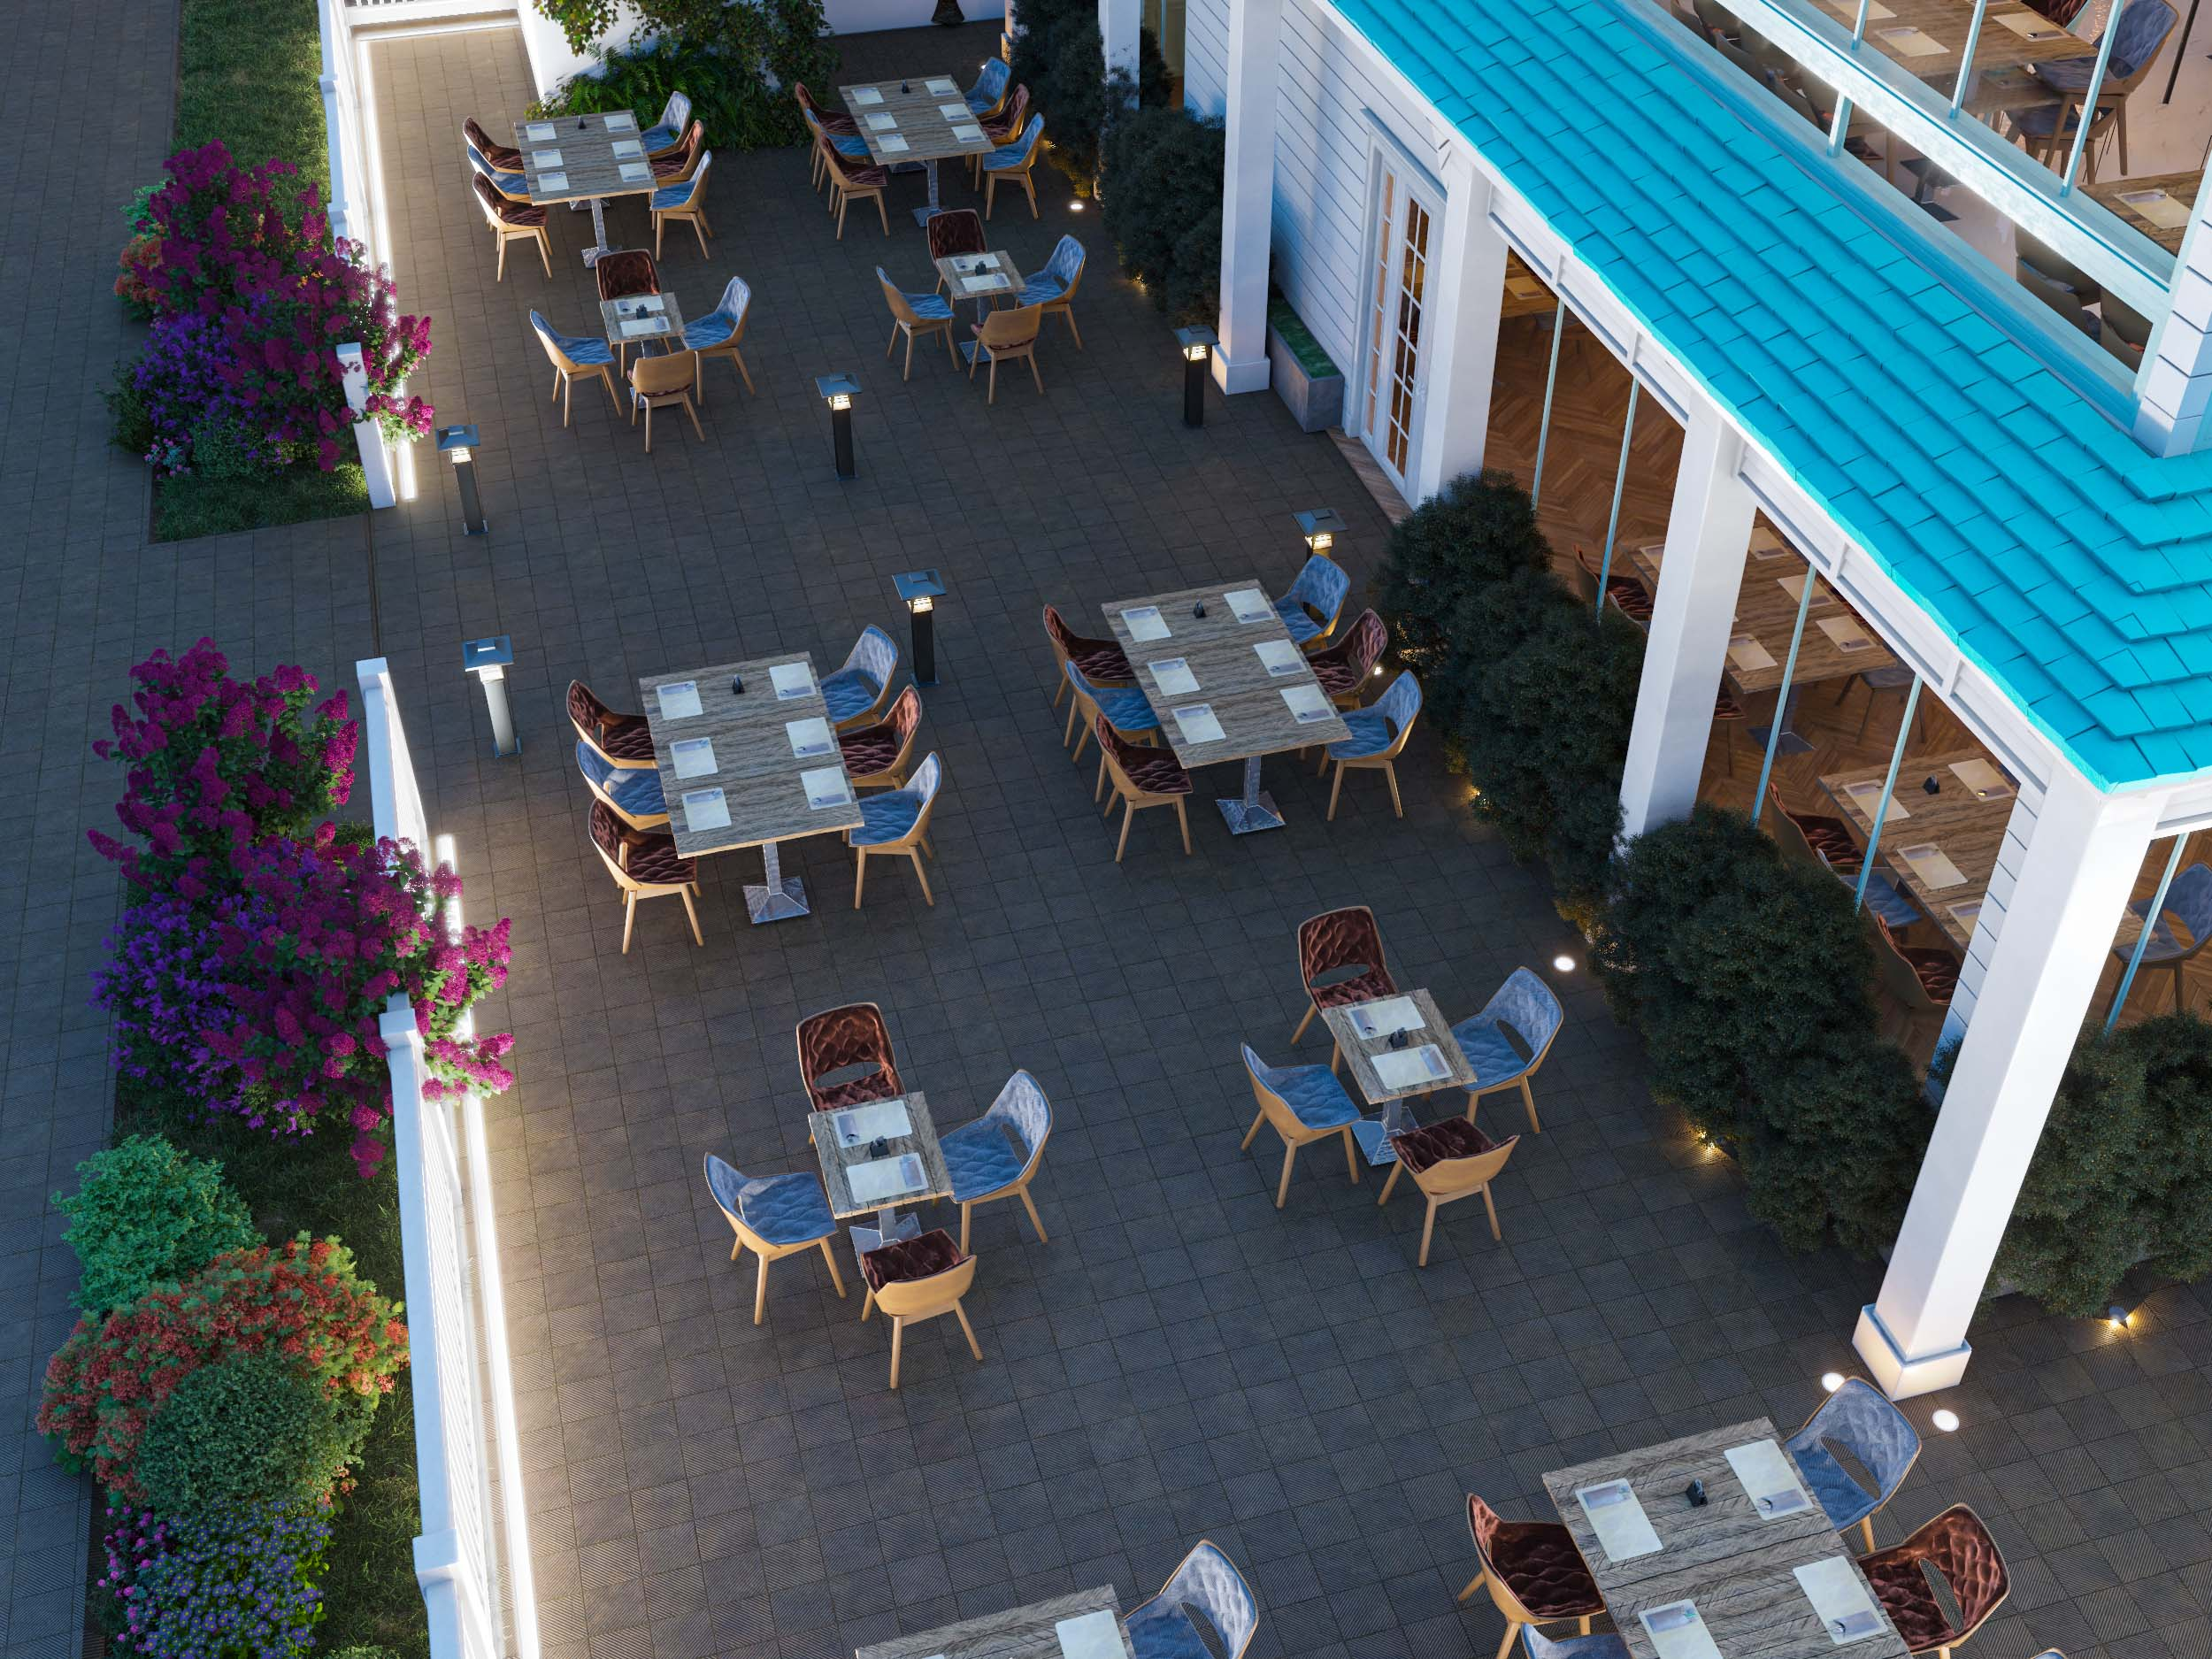 CAFE DESIGN BY HRarchZ -OUTSIDE AREA- TURQUOISE